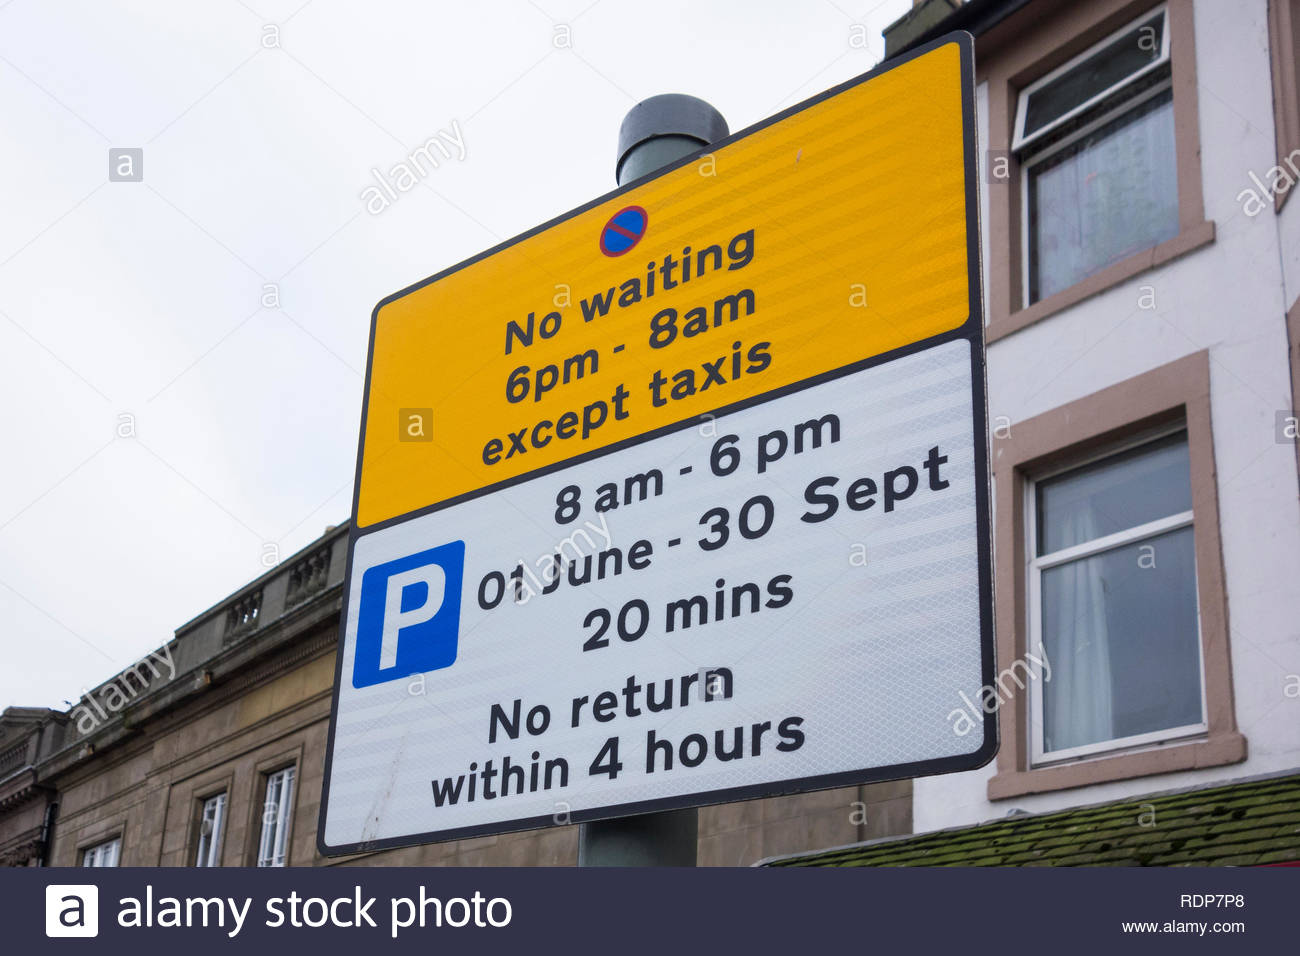 Parking sign in Morecambe, Lancashire, England, UK with time and seasonal limits - Stock Image